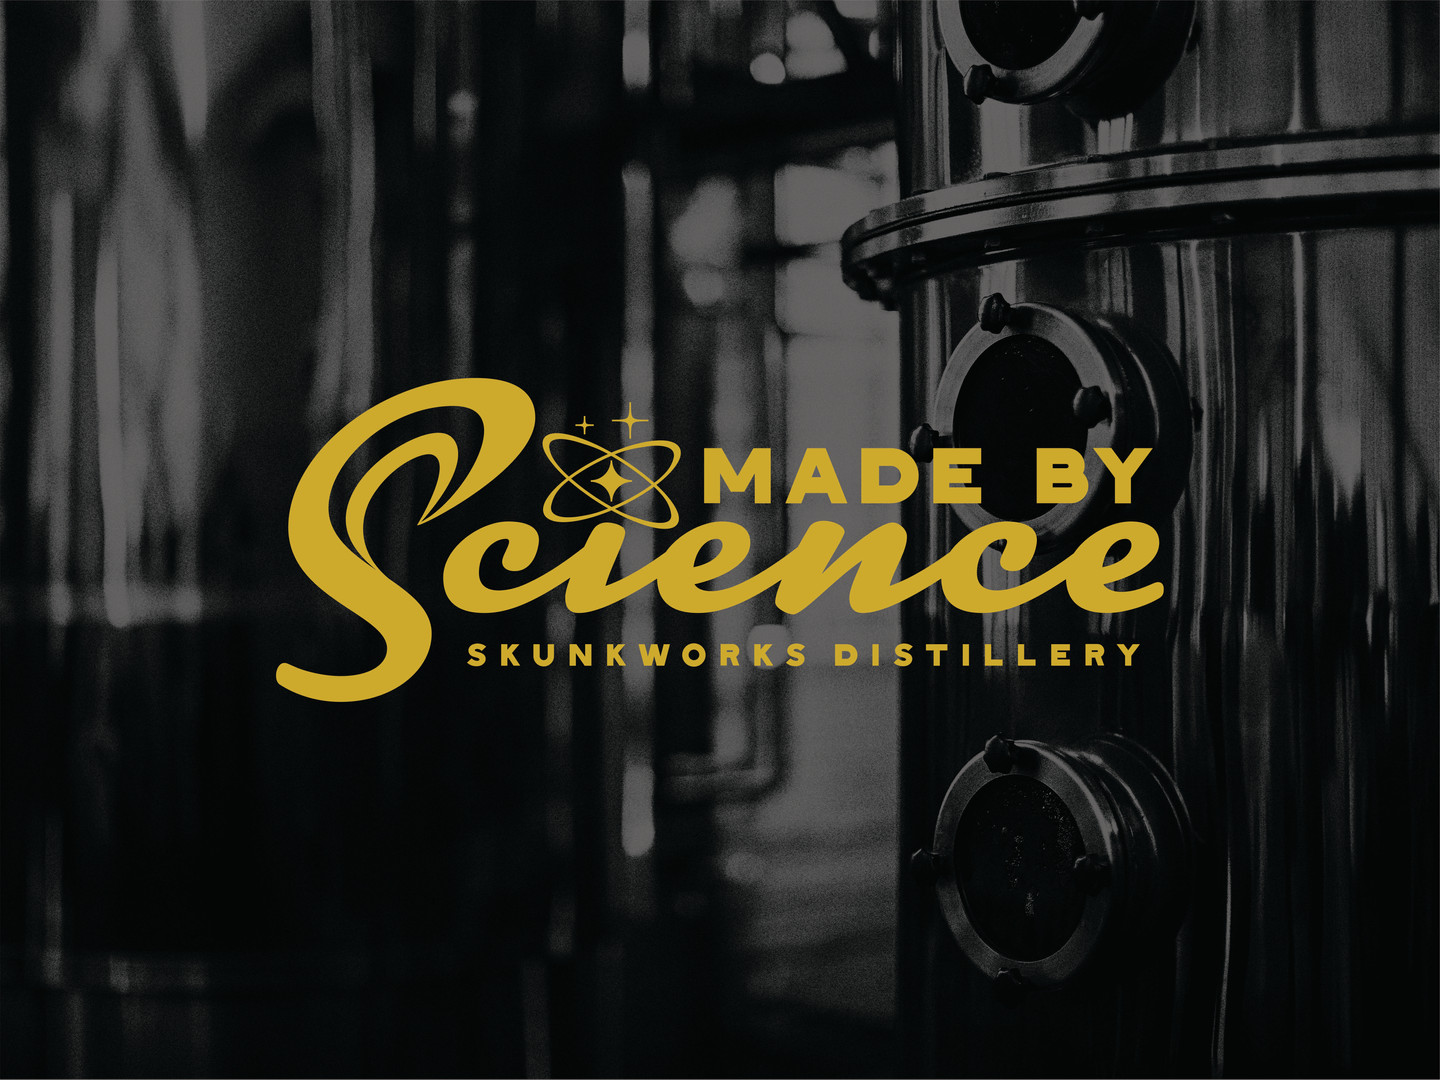 Made by Science